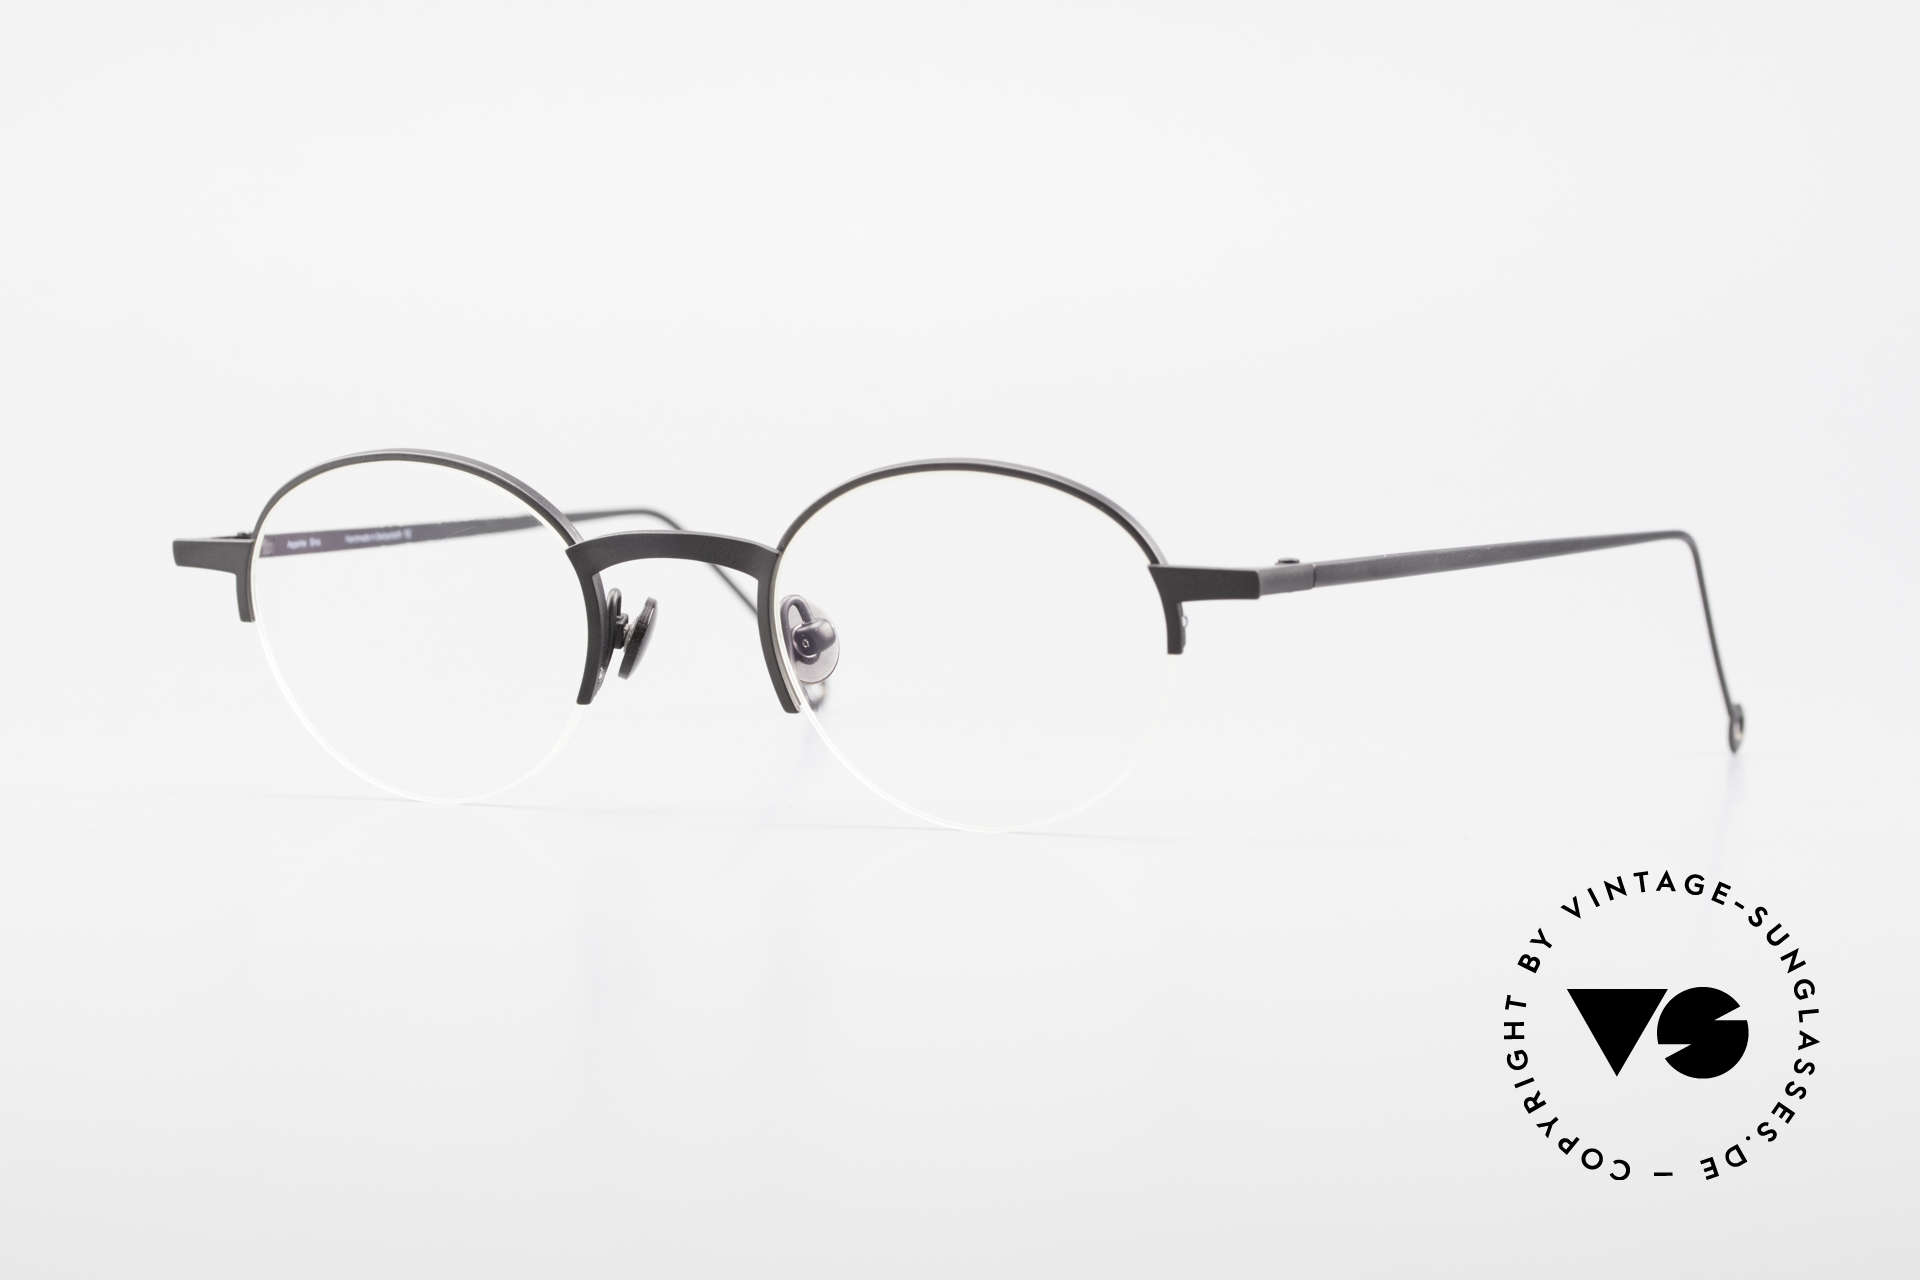 Markus Marienfeld Sina Pure Titanium Frame Handmade, glasses by Markus Marienfeld from Switzerland, Made for Men and Women